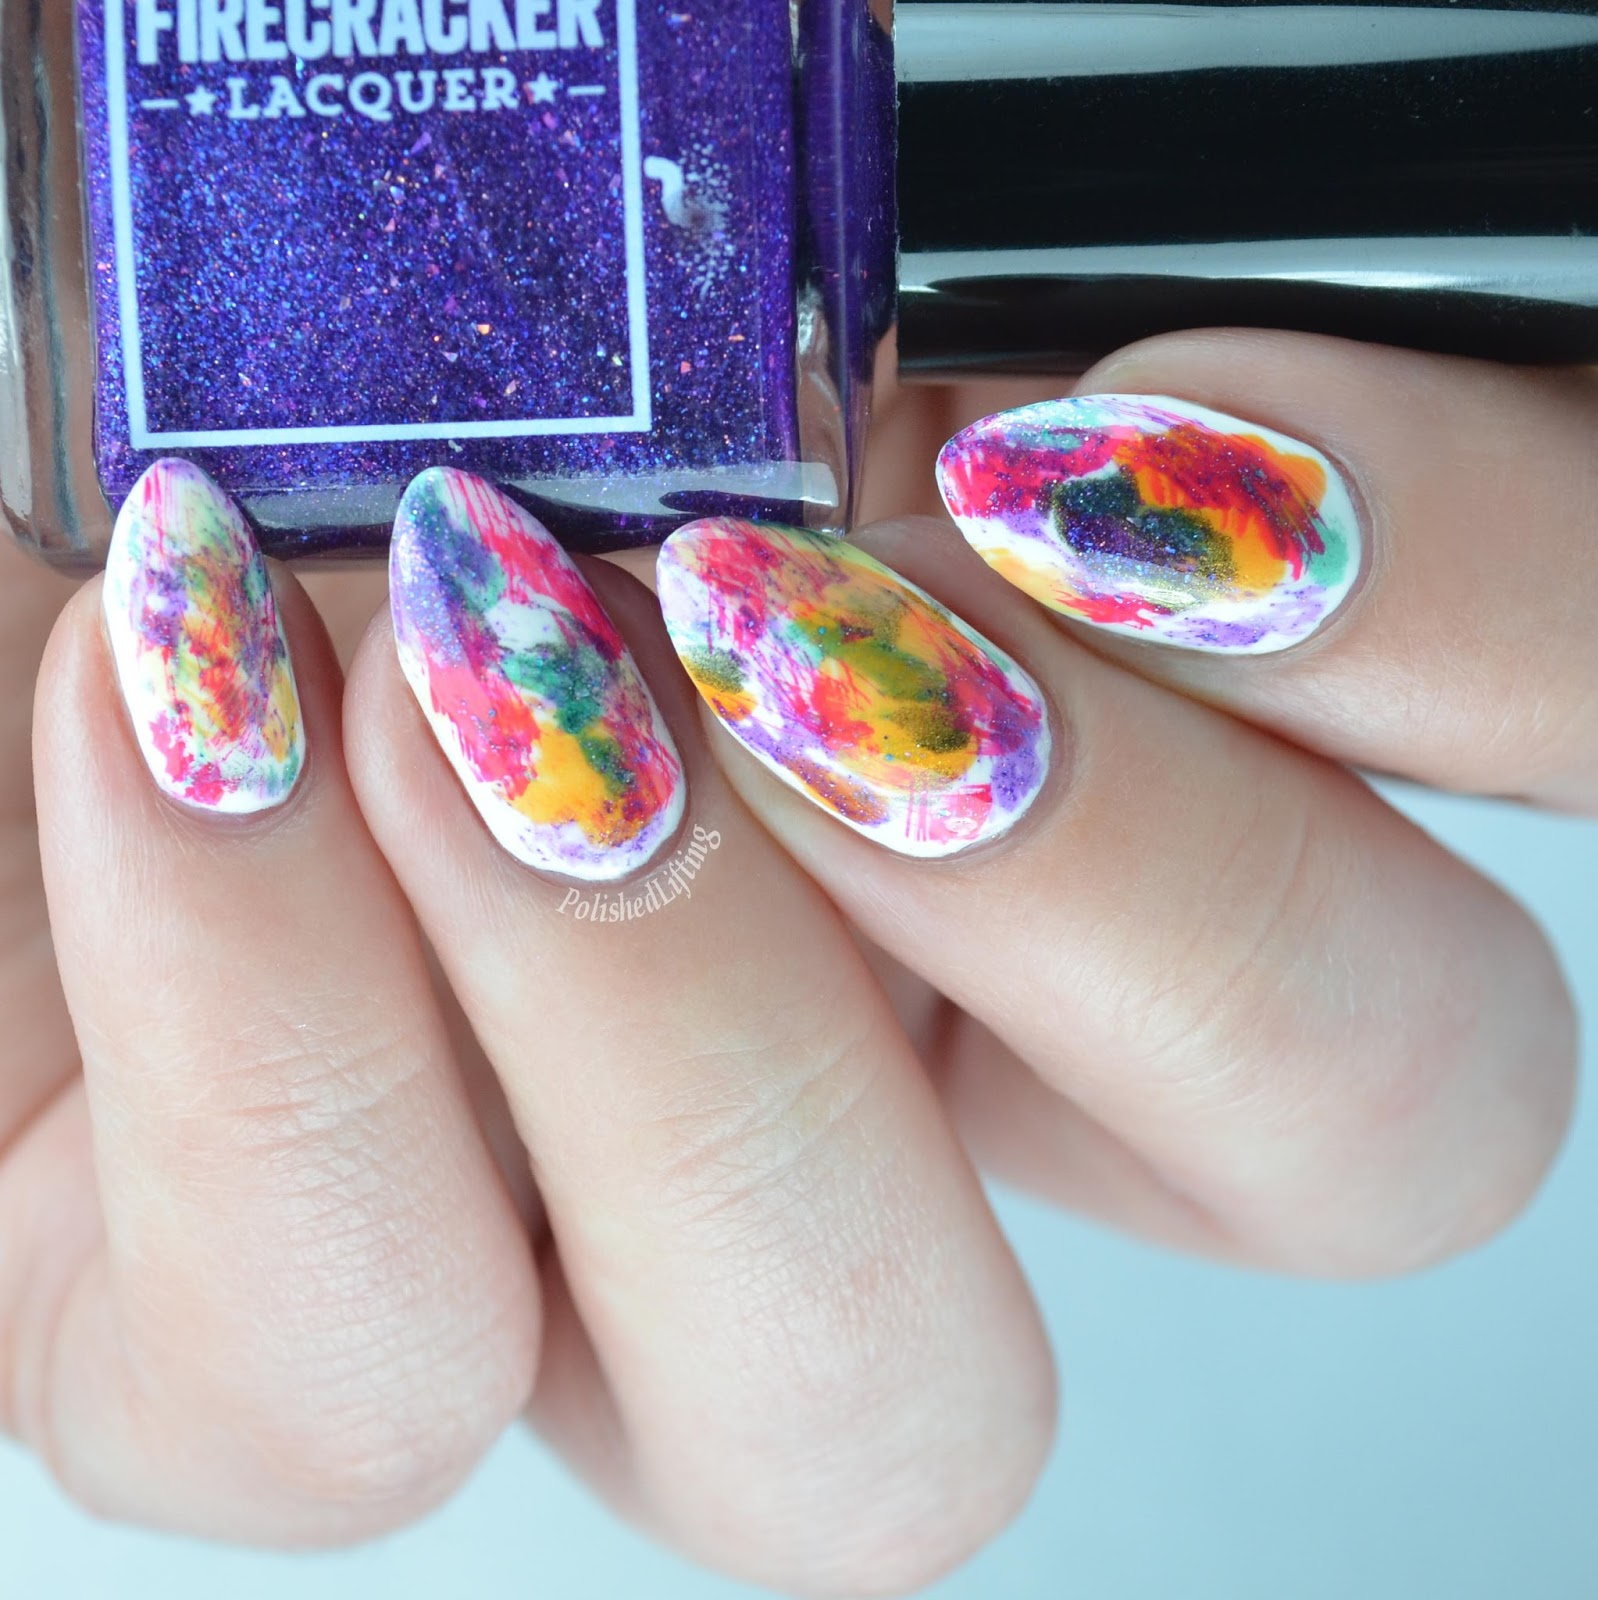 Polished Lifting: March Clairestelle8 Nail Art Challenge - Clothes